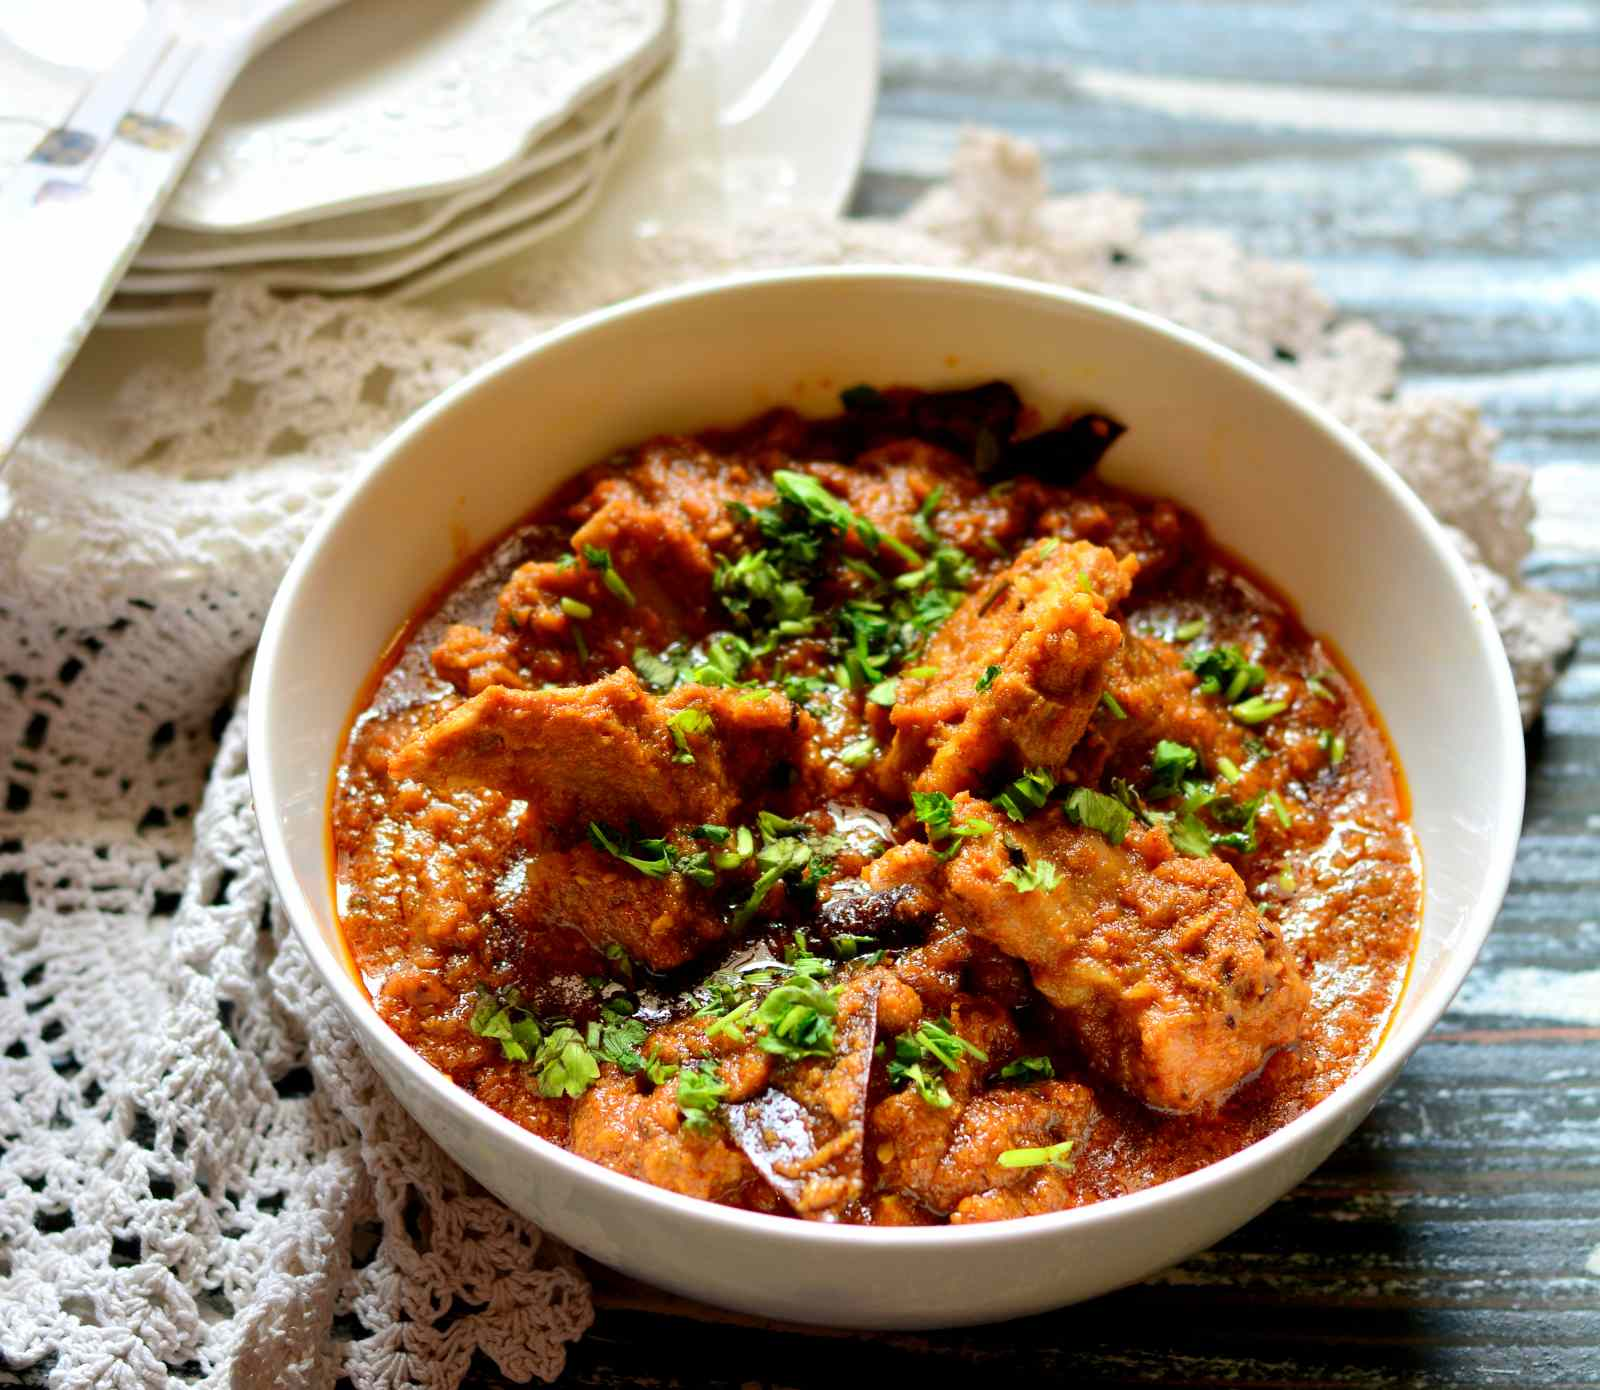 Kashmiri Rogan Josh Recipe - Mutton in Red Curry